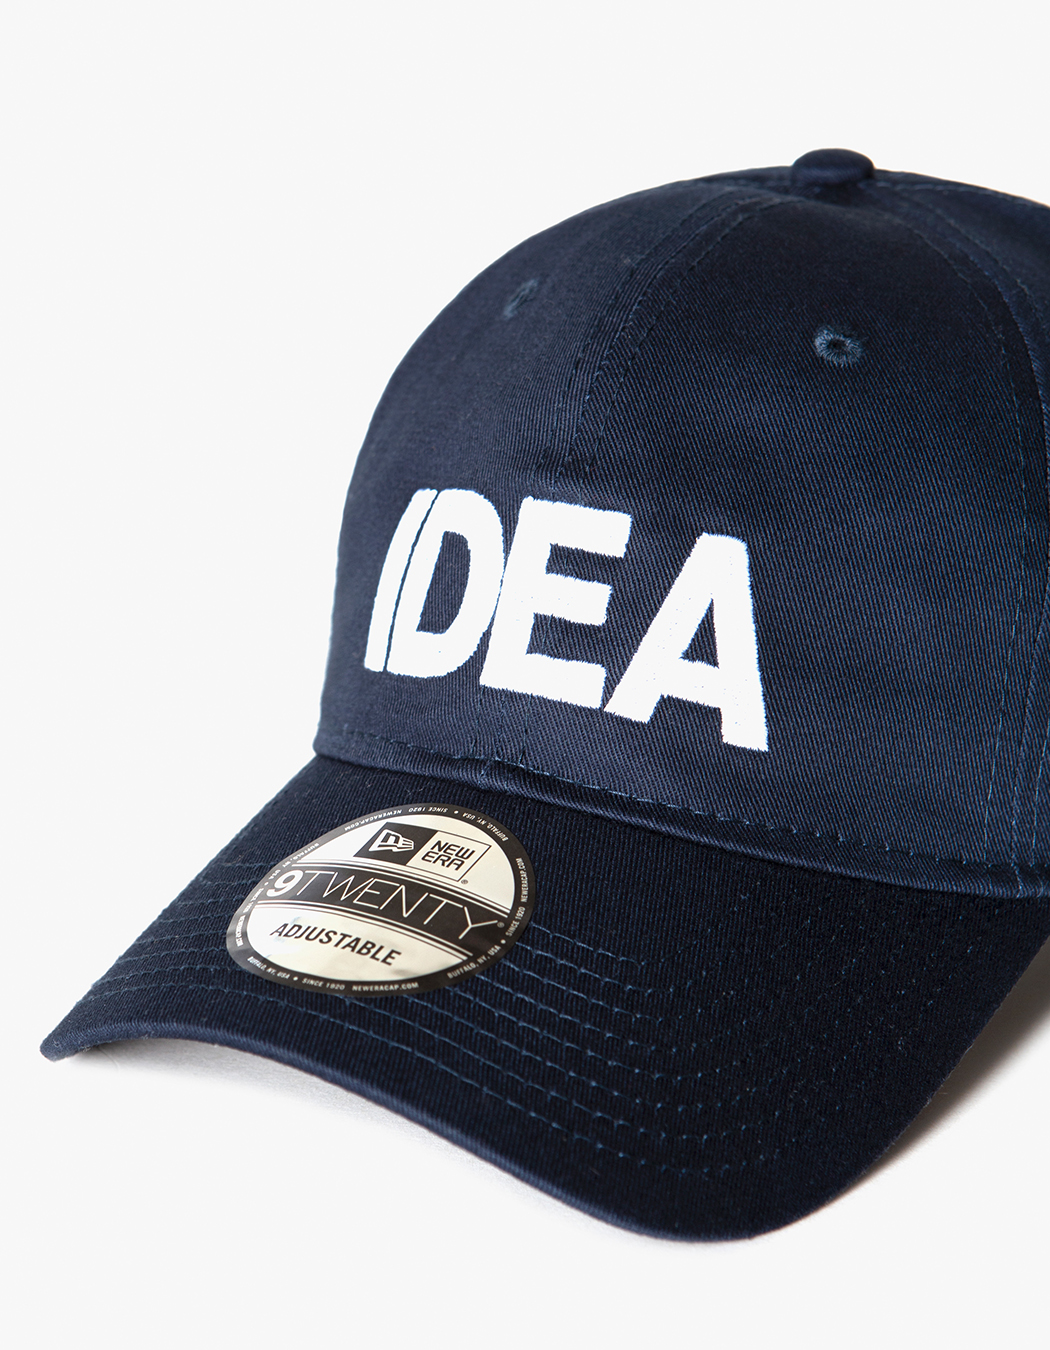 IDEA.ltd - IDEA Logo Hat